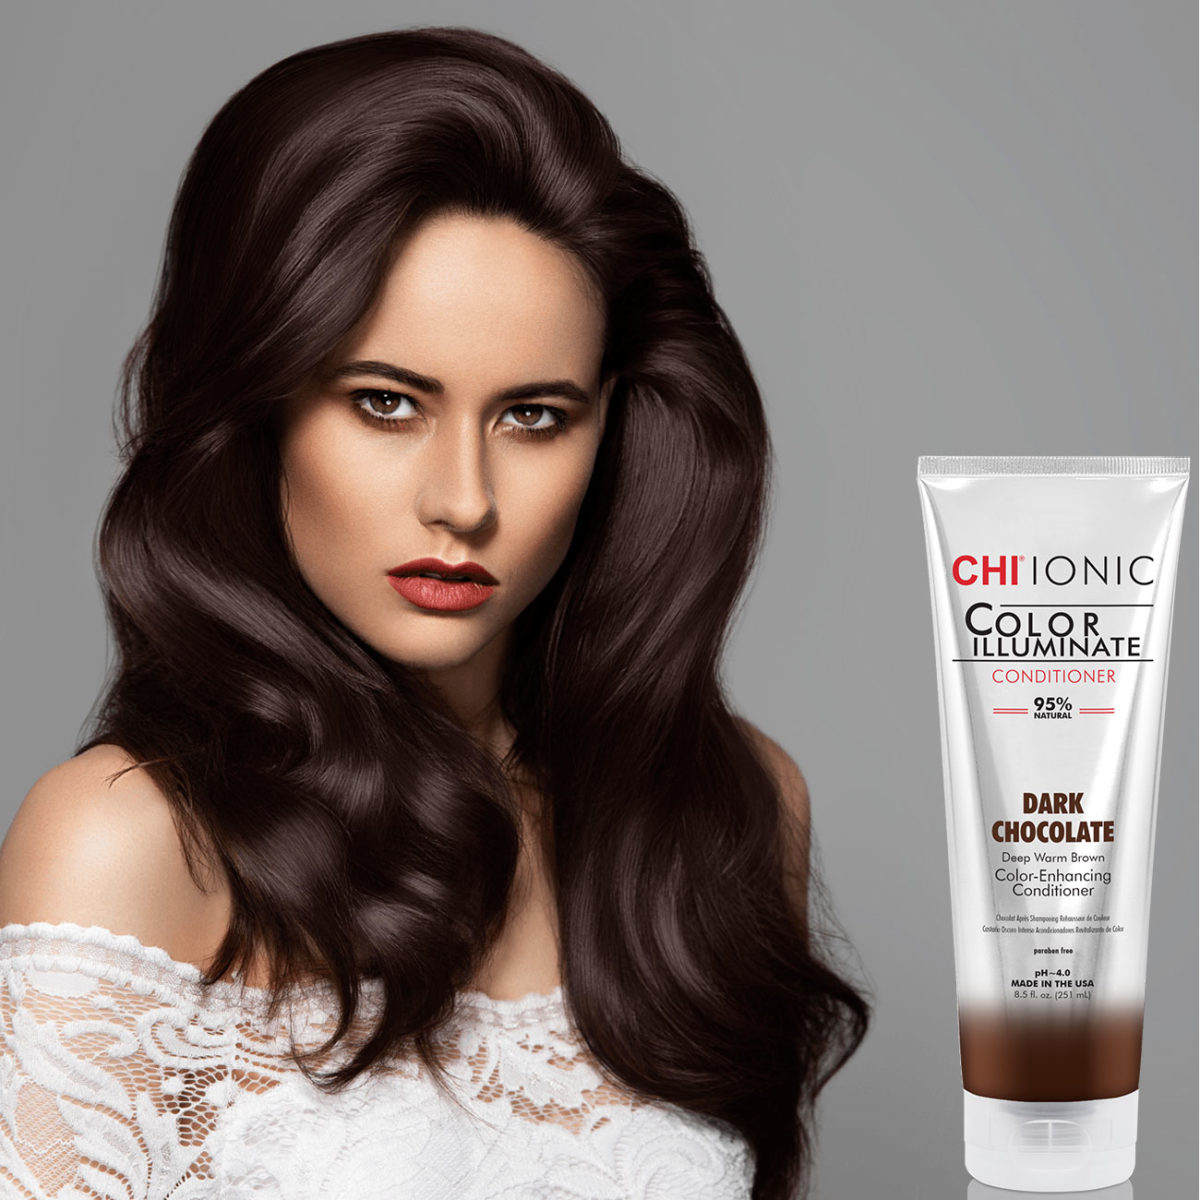 CHI Ionic Color Illuminate Conditioner – Dark Chocolate Shampoos + Conditioners